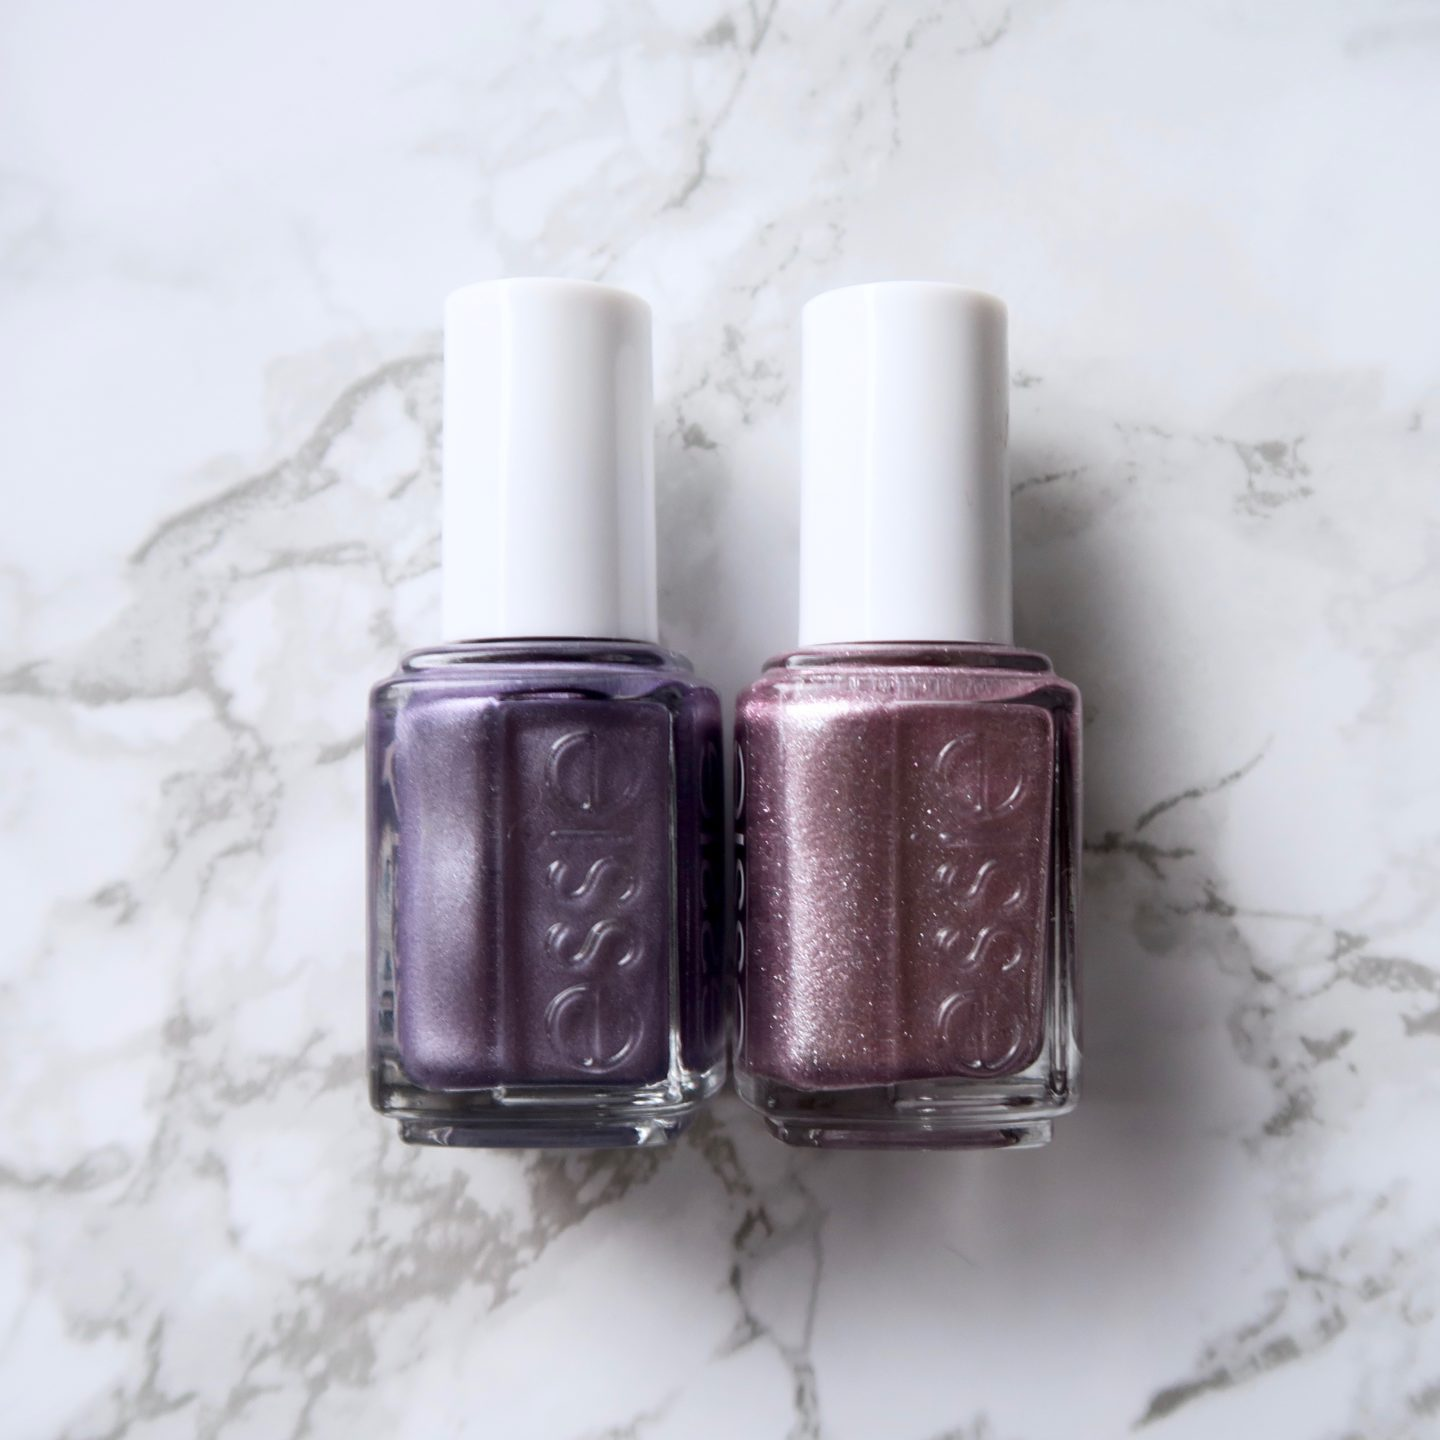 Essie Fall 2017 collection - Girly Grunge, comparison with similar essie polishes